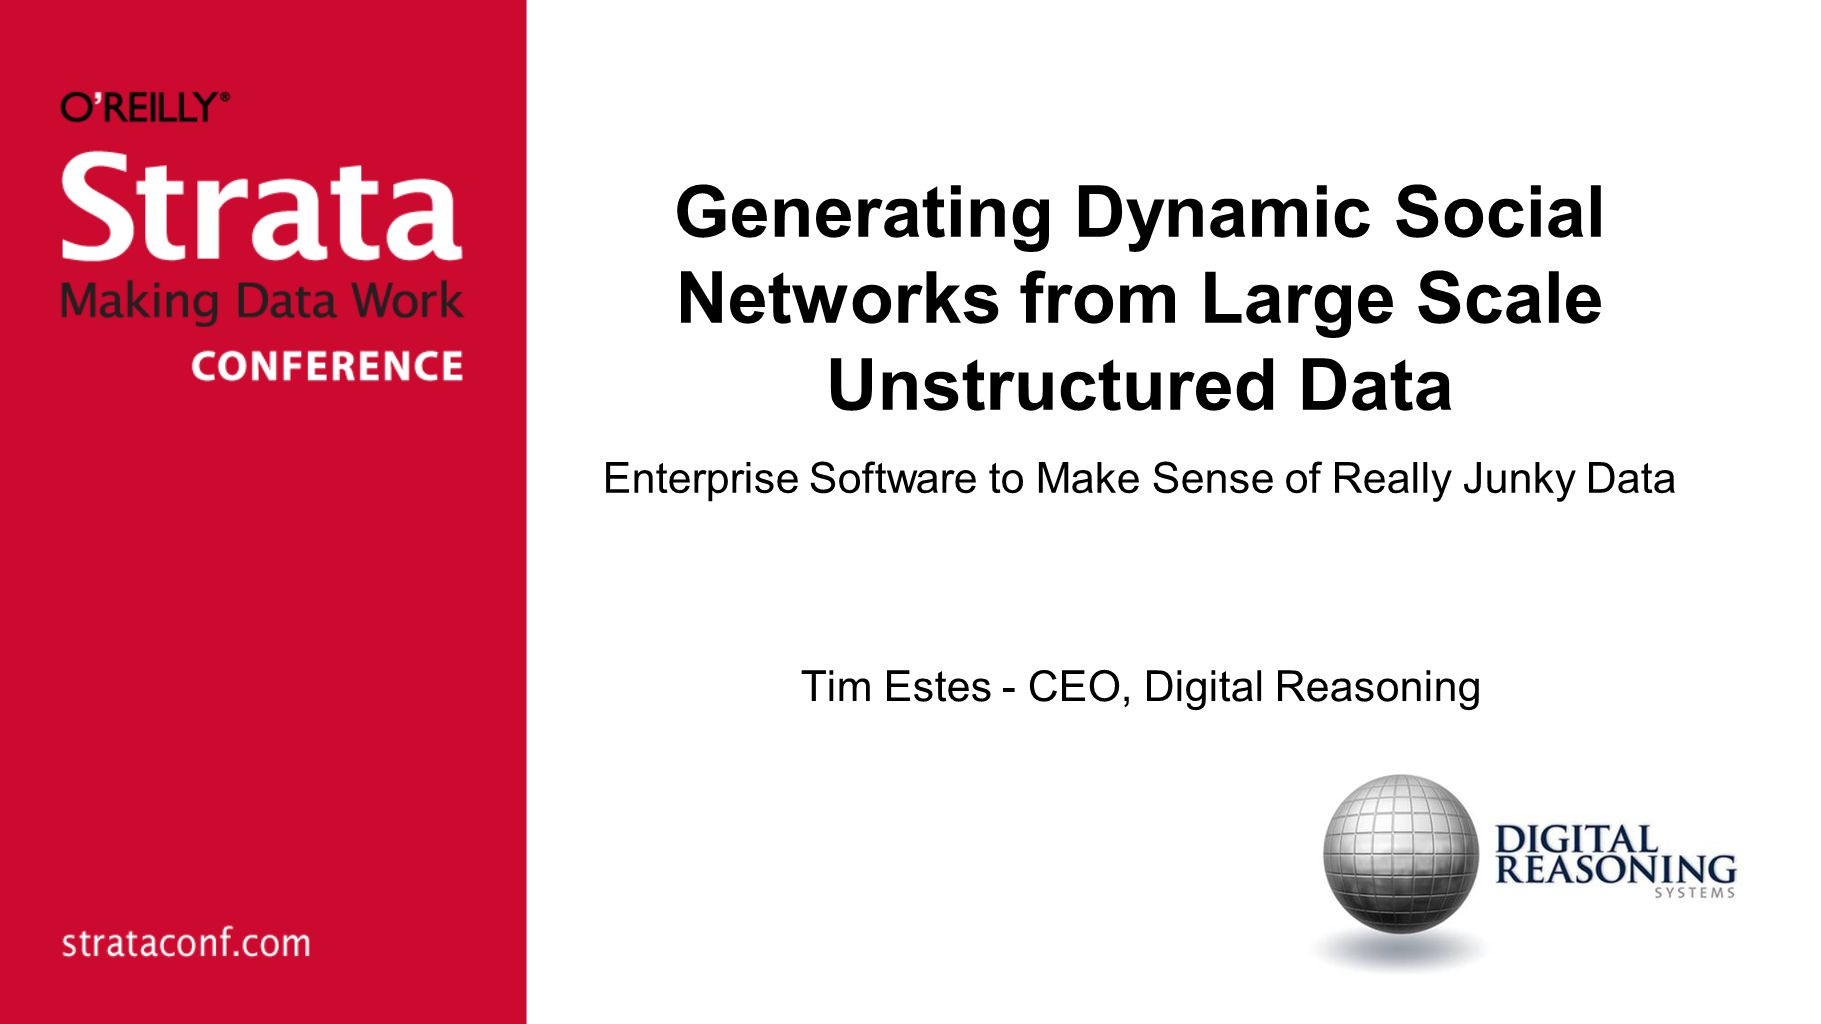 Generating Dynamic Social Networks from Large Scale Unstructured Data Enterprise Software to Make Sense of Really Junky Data Tim Estes - CEO, Digital Reasoning